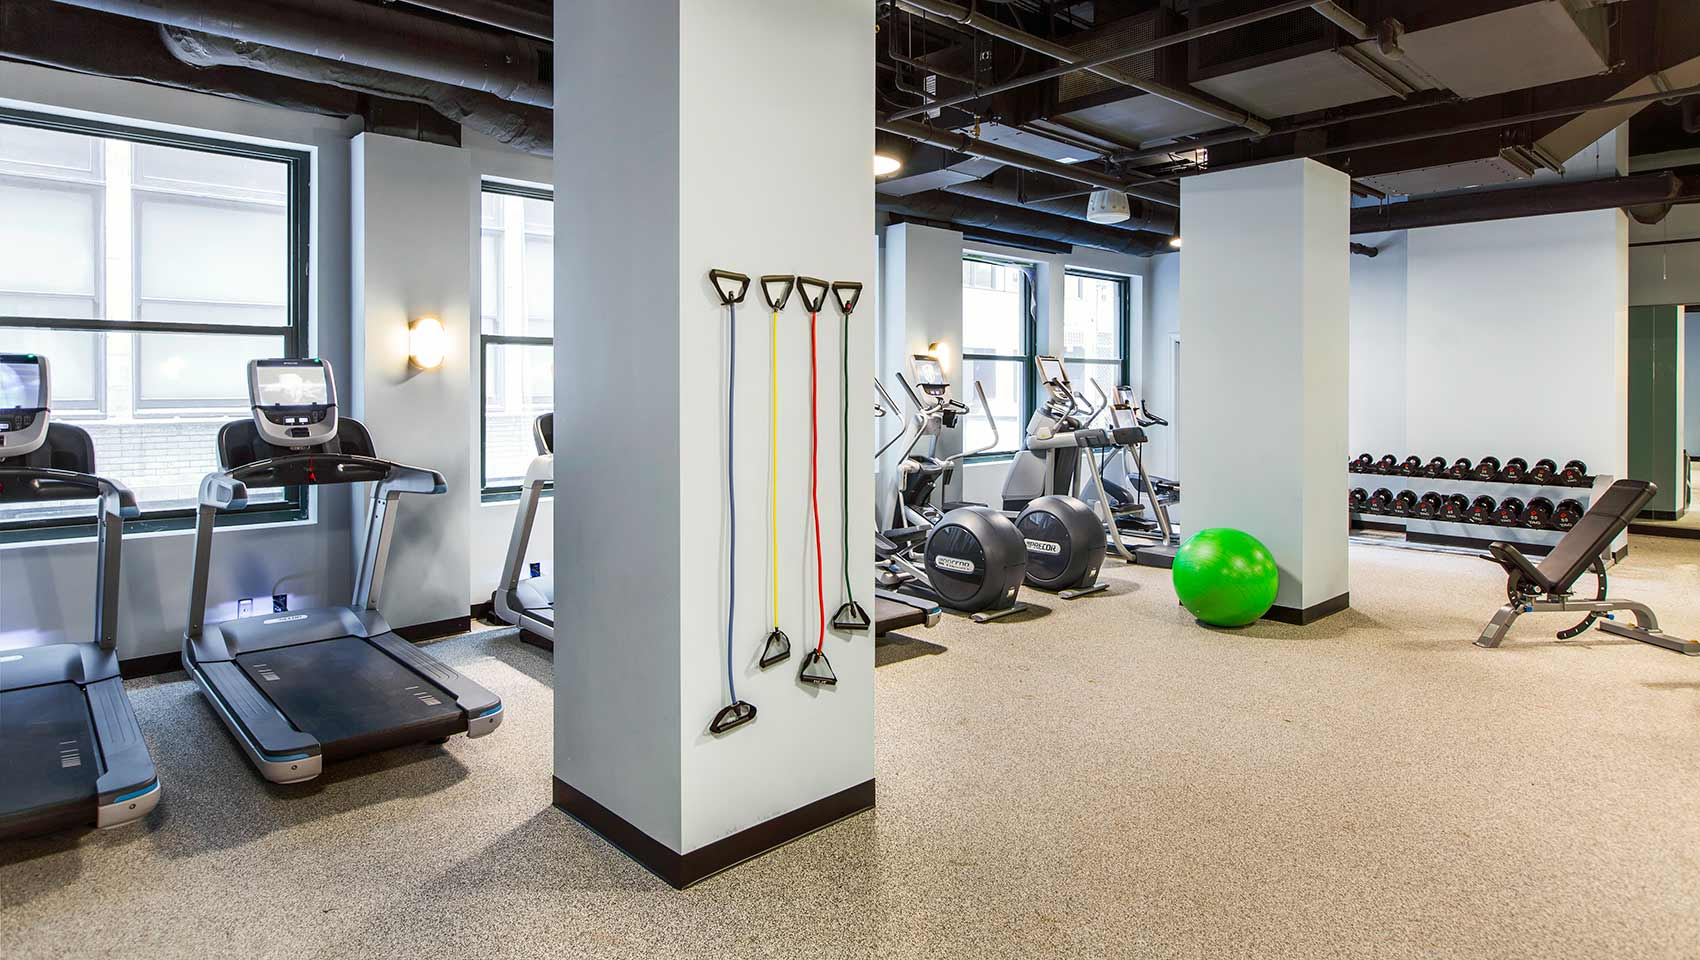 Kimpton Gray Hotel fitness center